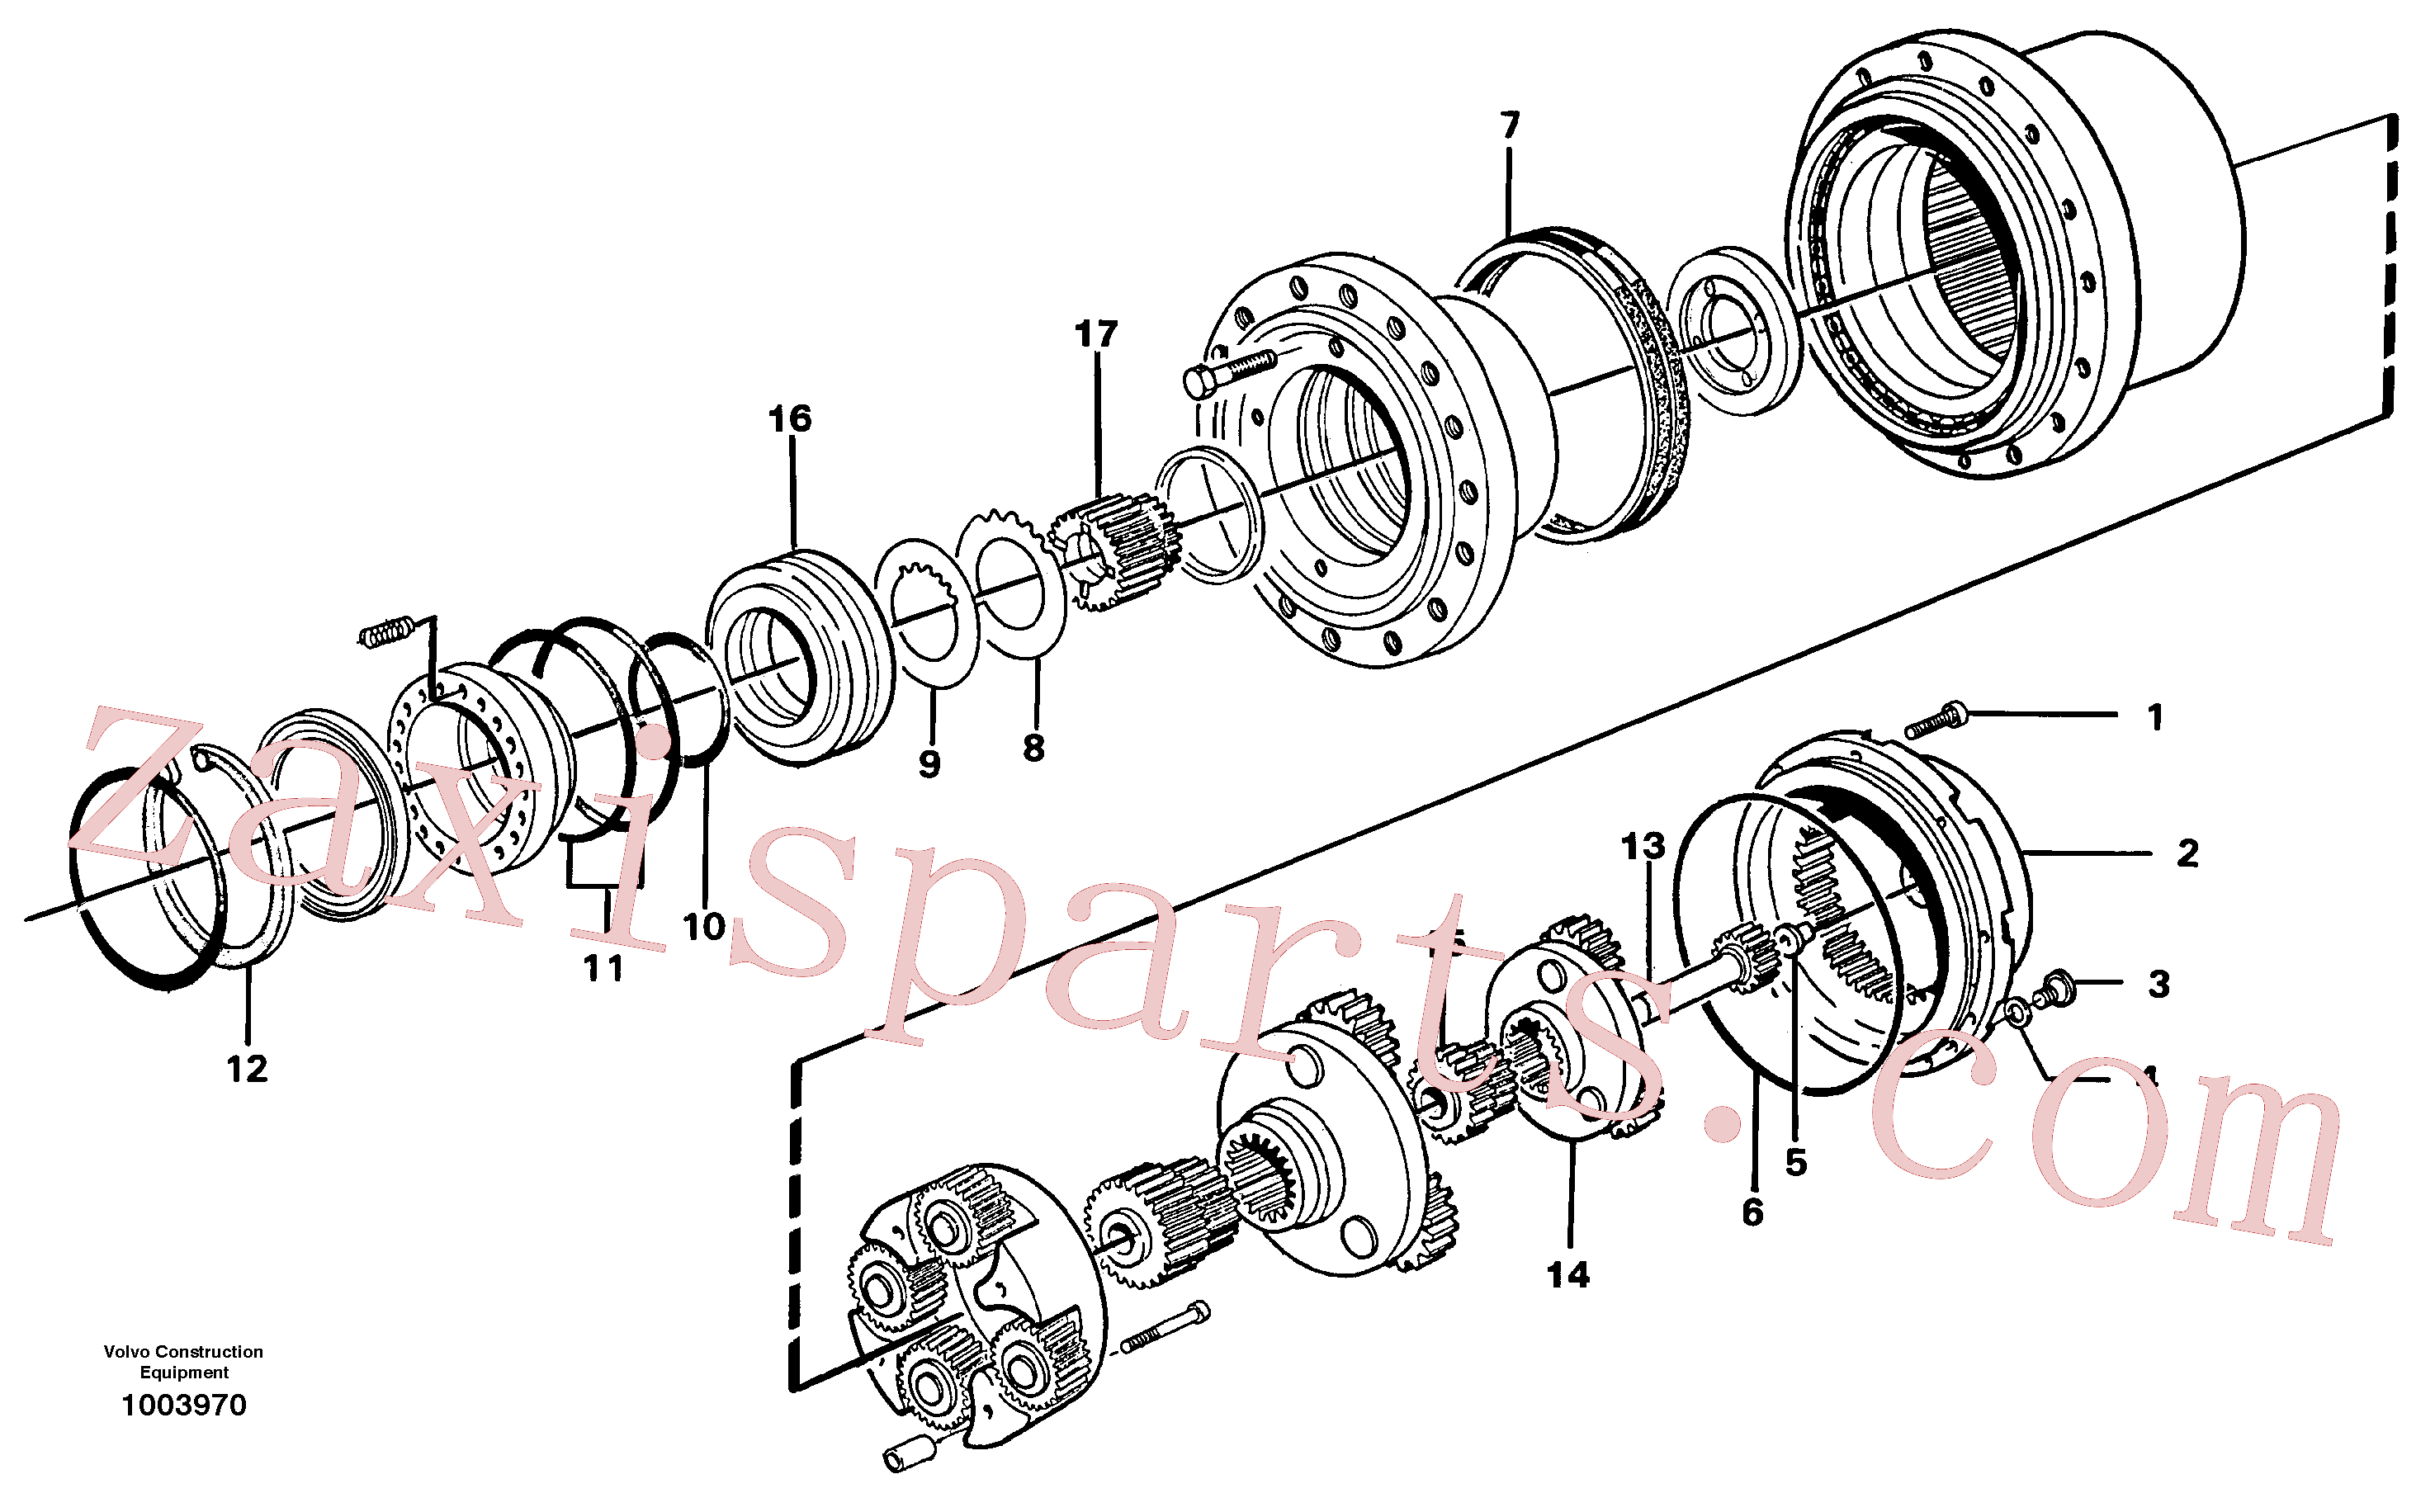 RM70921408 for Volvo Planetary drive(1003970 assembly)